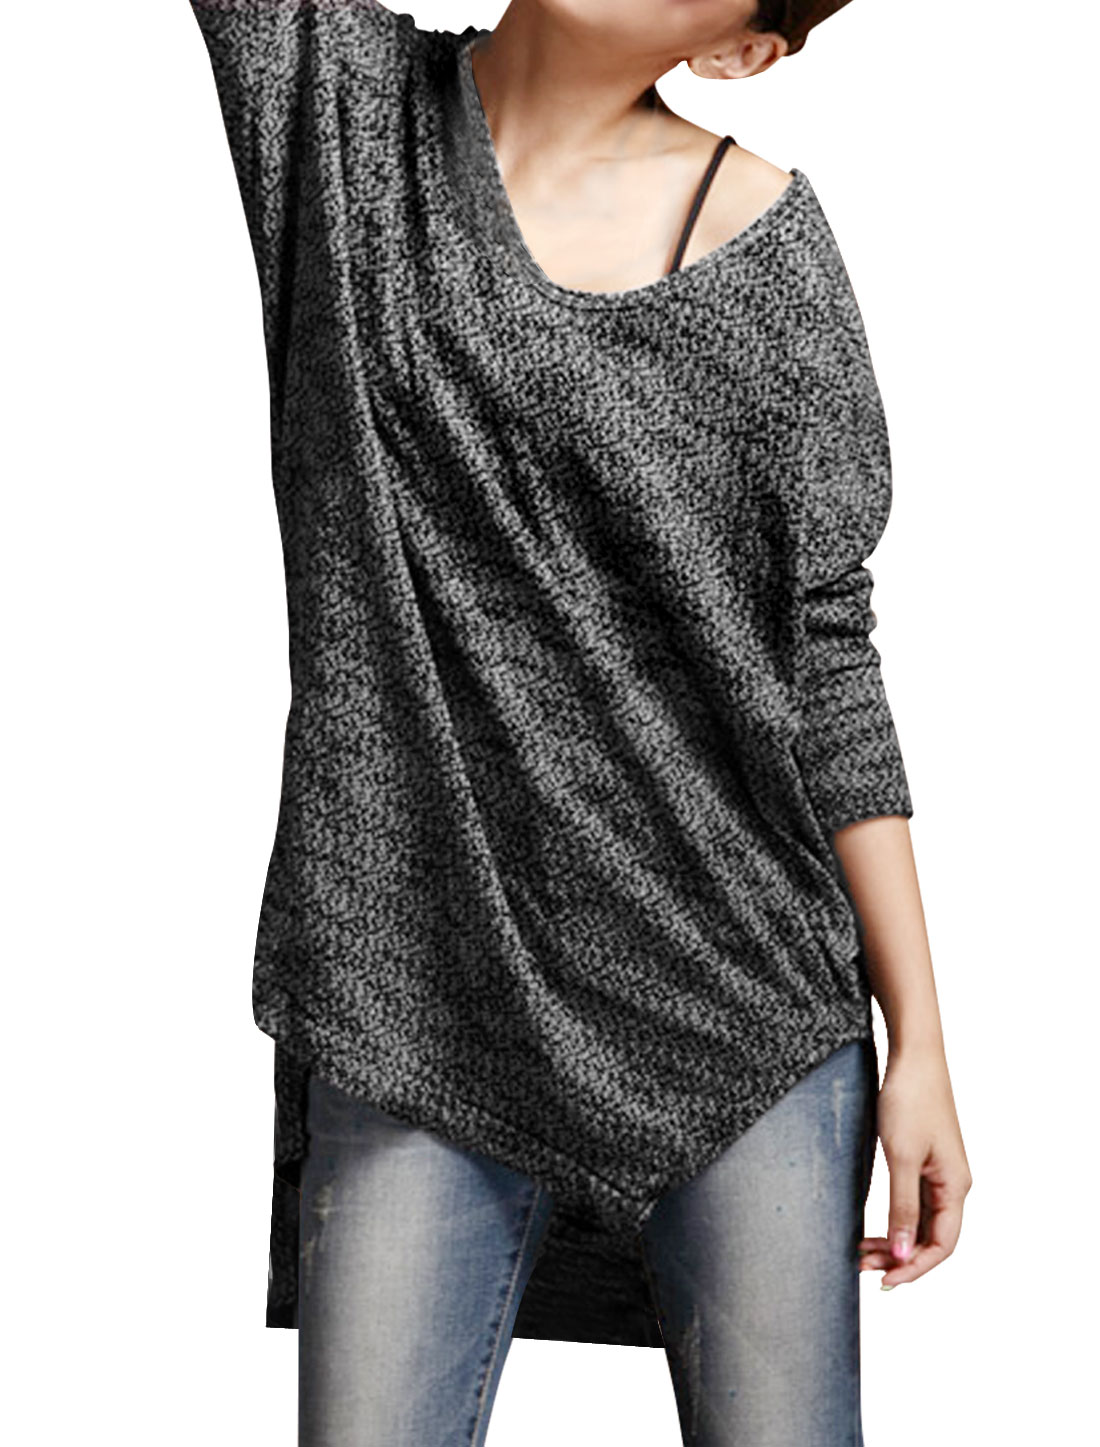 Ladies Black V Neck Long Sleeves Pullover Autumn Casual Tunic Shirt XS